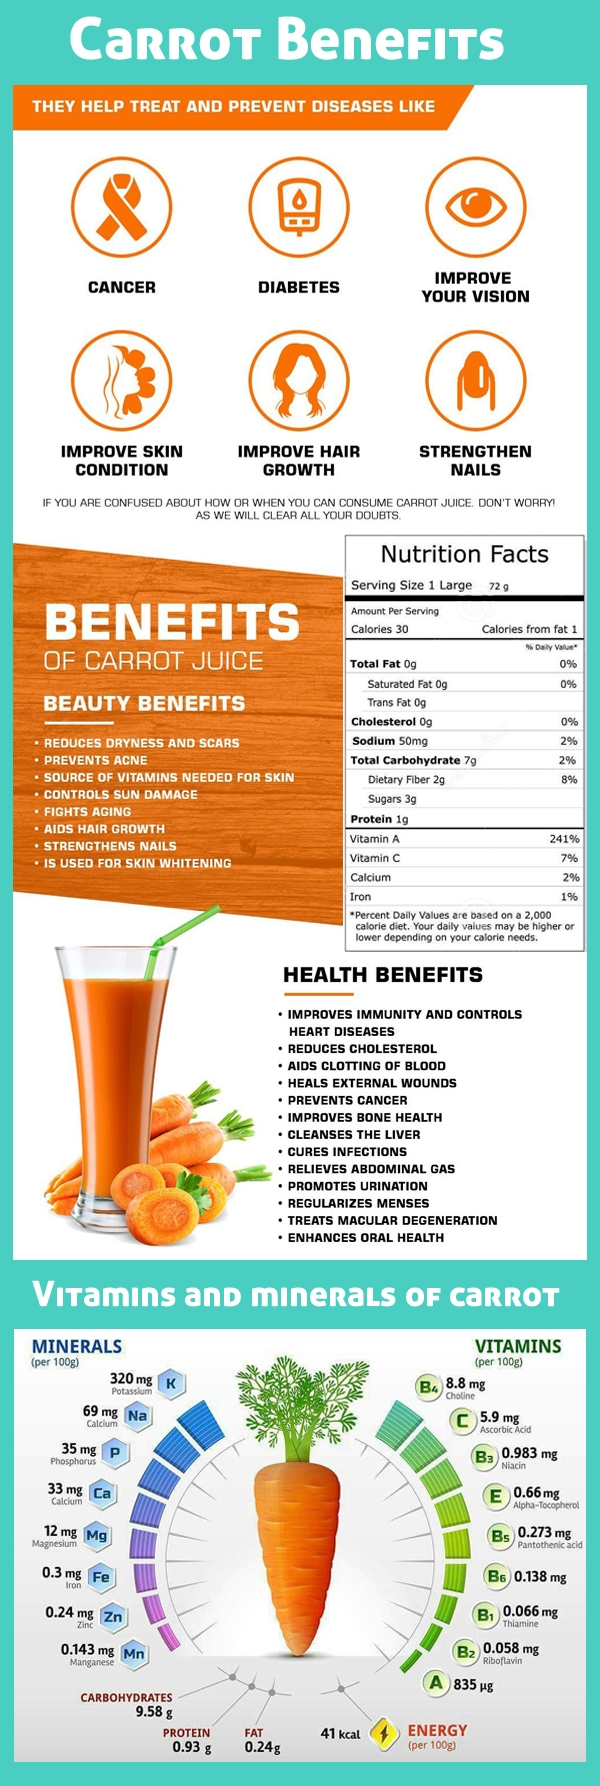 Benefits of carrot